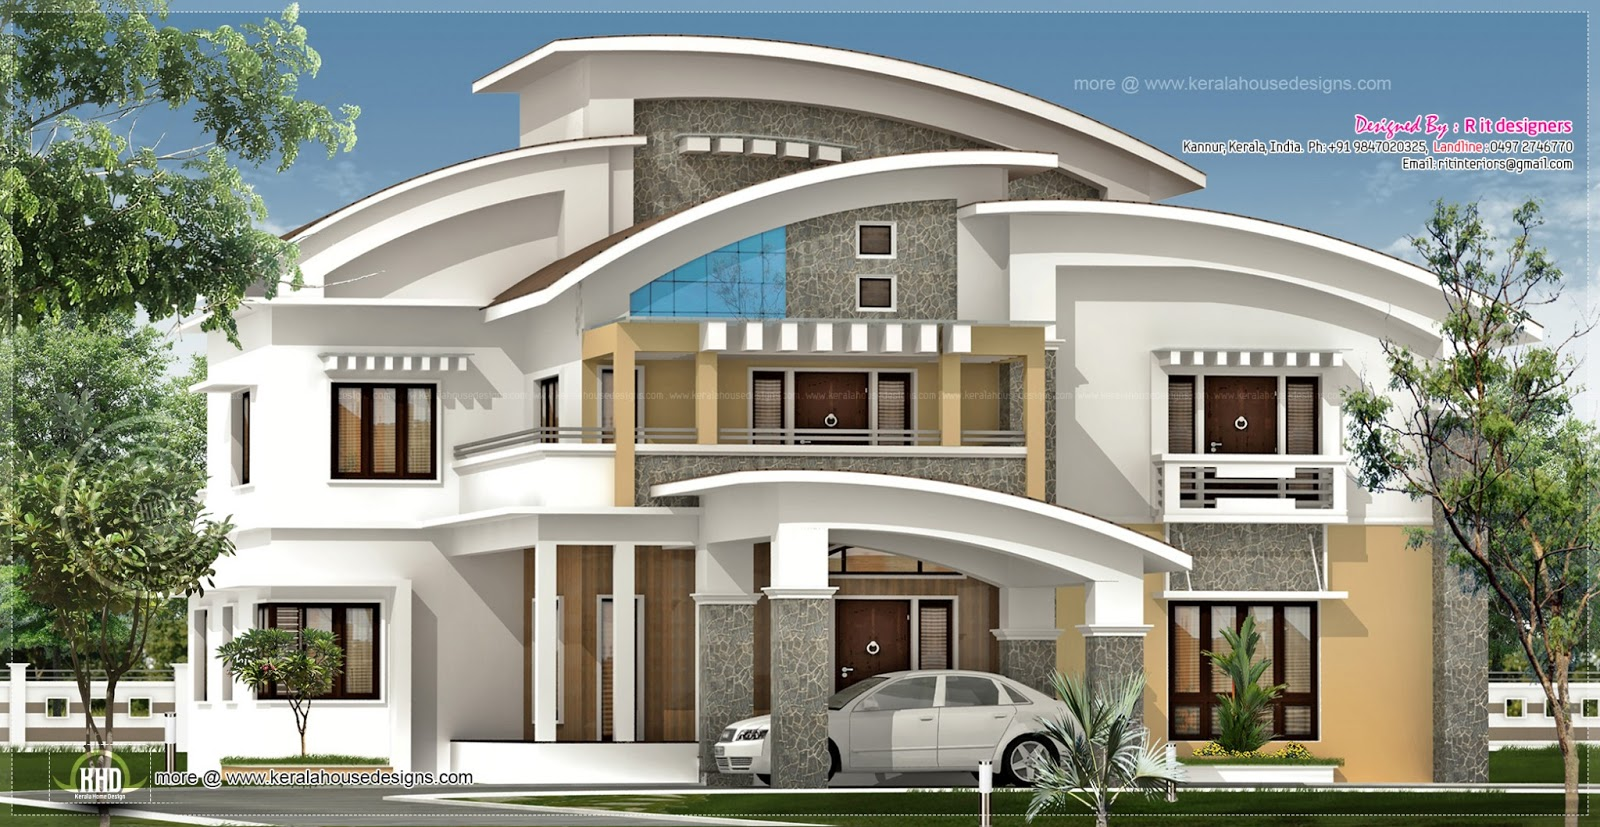 Luxury House Designs 3750 Square Feet Luxury Villa Exterior House Design  Plans